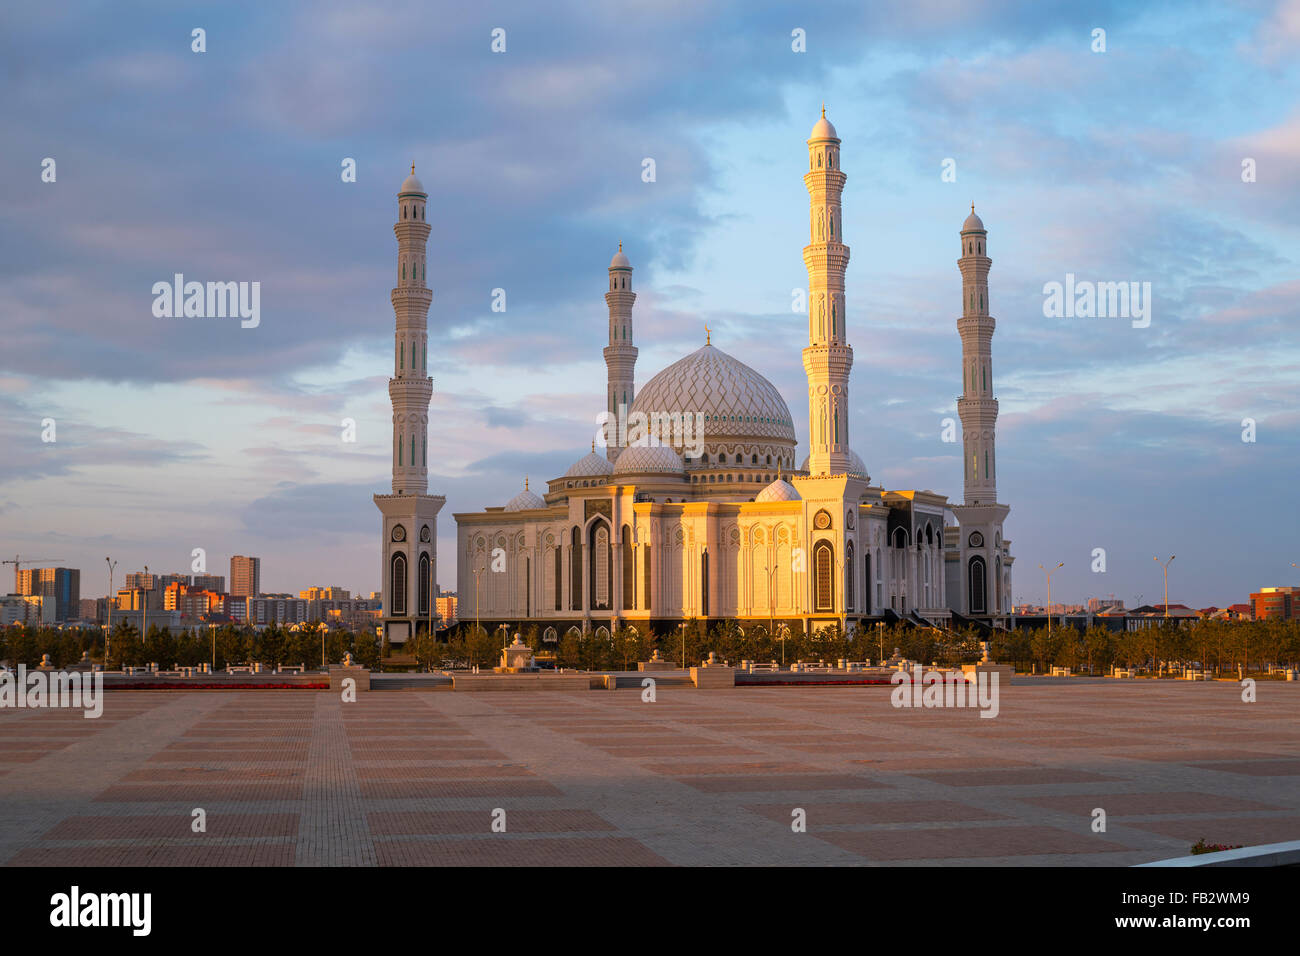 Central Asia, Kazakhstan, Astana, Hazrat Sultan Mosque, the largest in Central Asia, at dusk - Stock Image